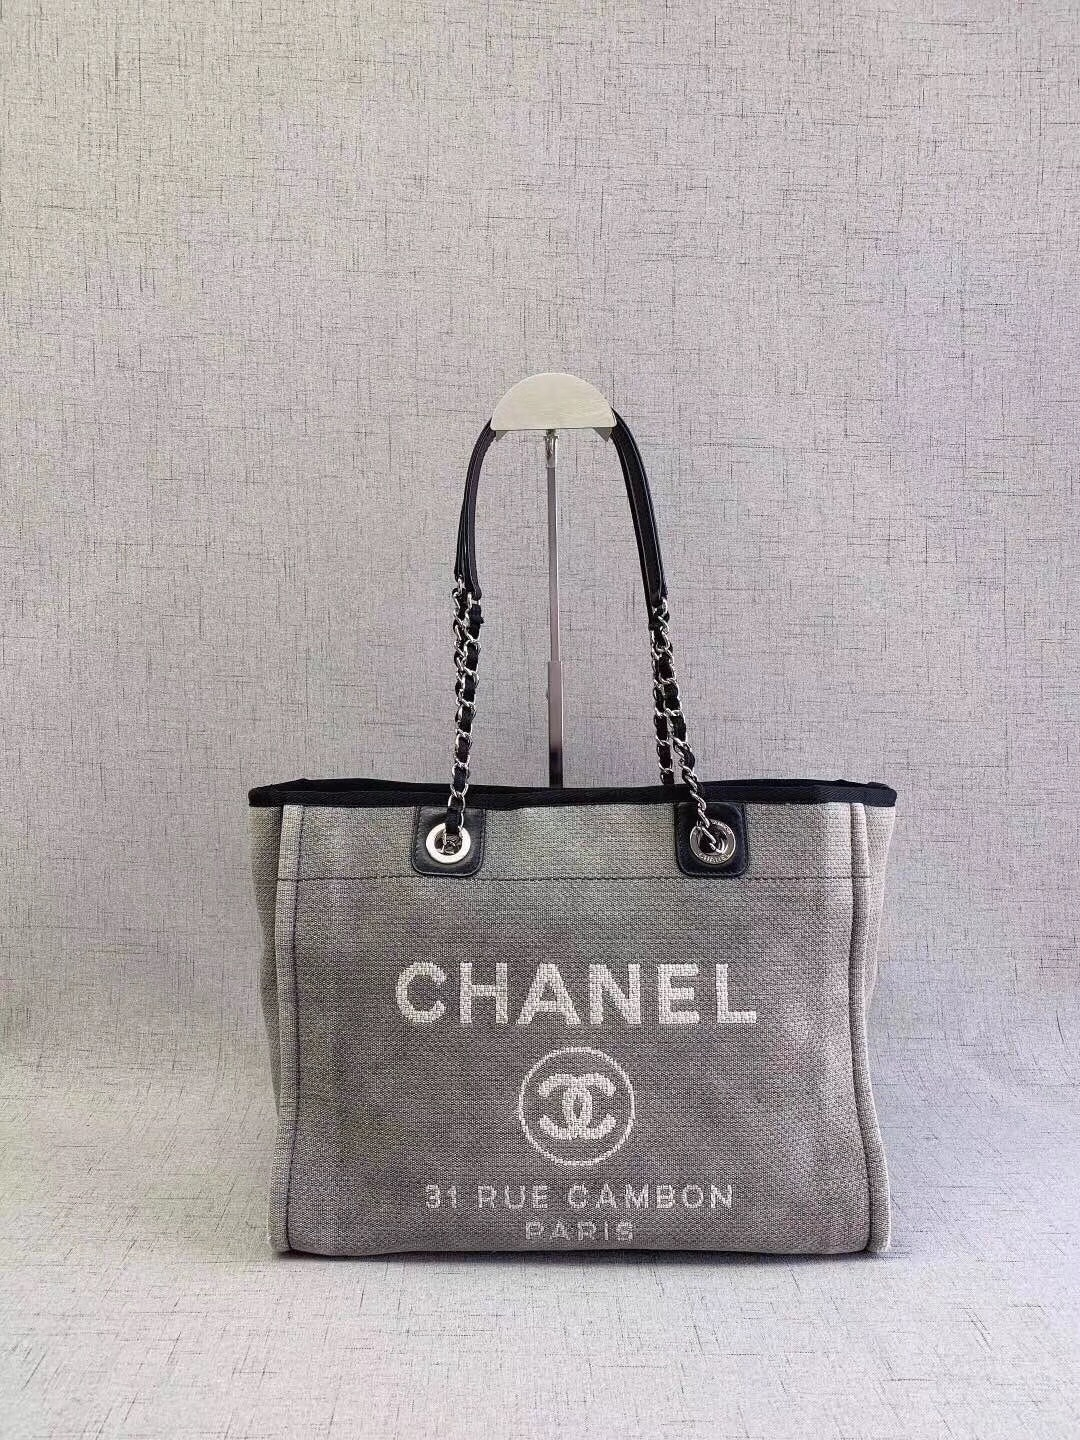 ab951cfb5f7fa5 AUTHENTIC CHANEL BLUE GREY MEDIUM CANVAS DEAUVILLE 2 WAY TOTE BAG ...